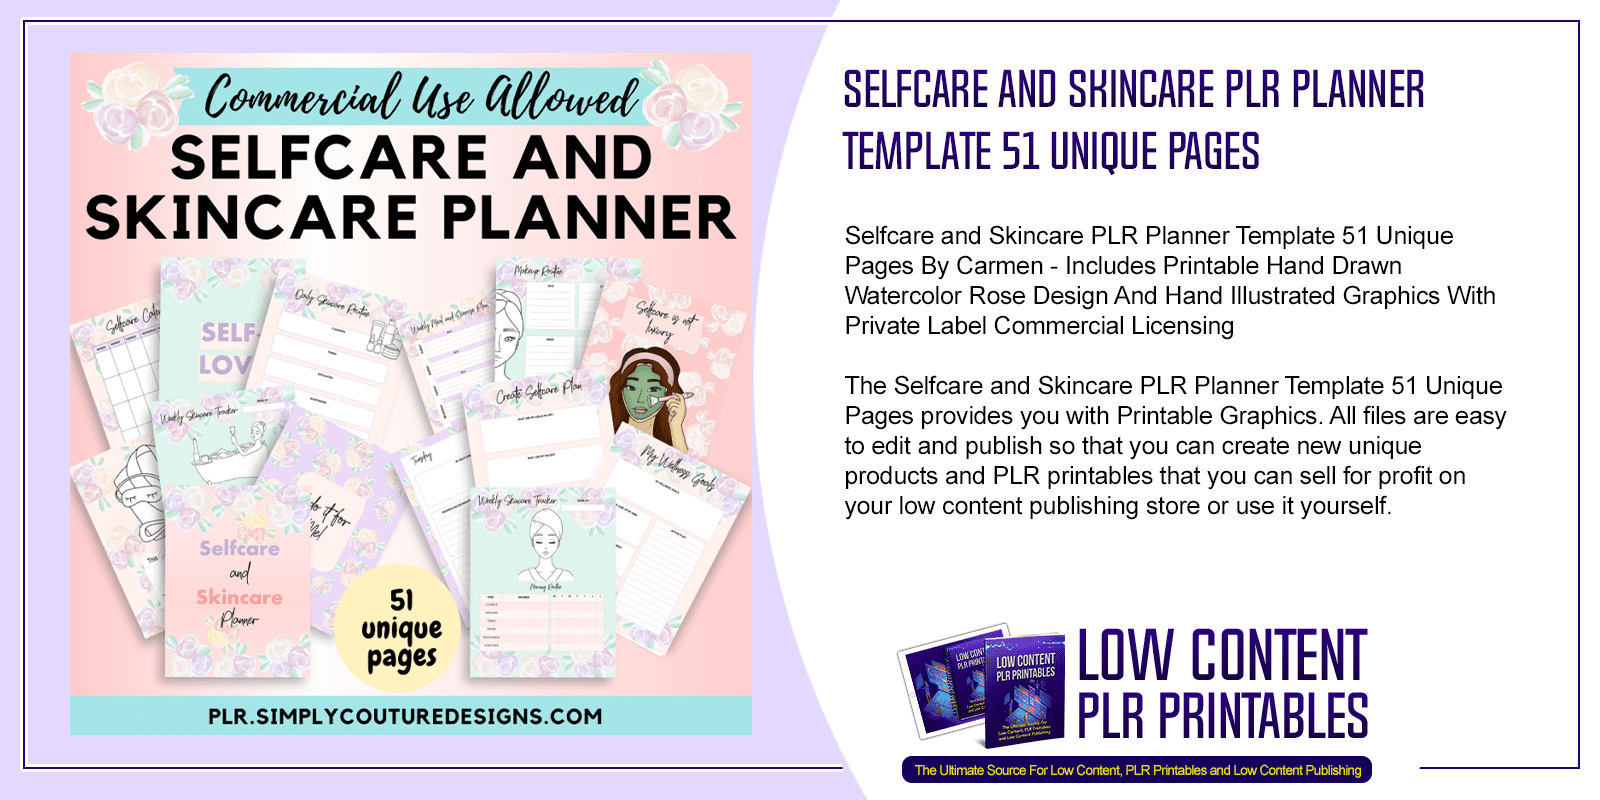 Selfcare and Skincare PLR Planner Template 51 Unique Pages